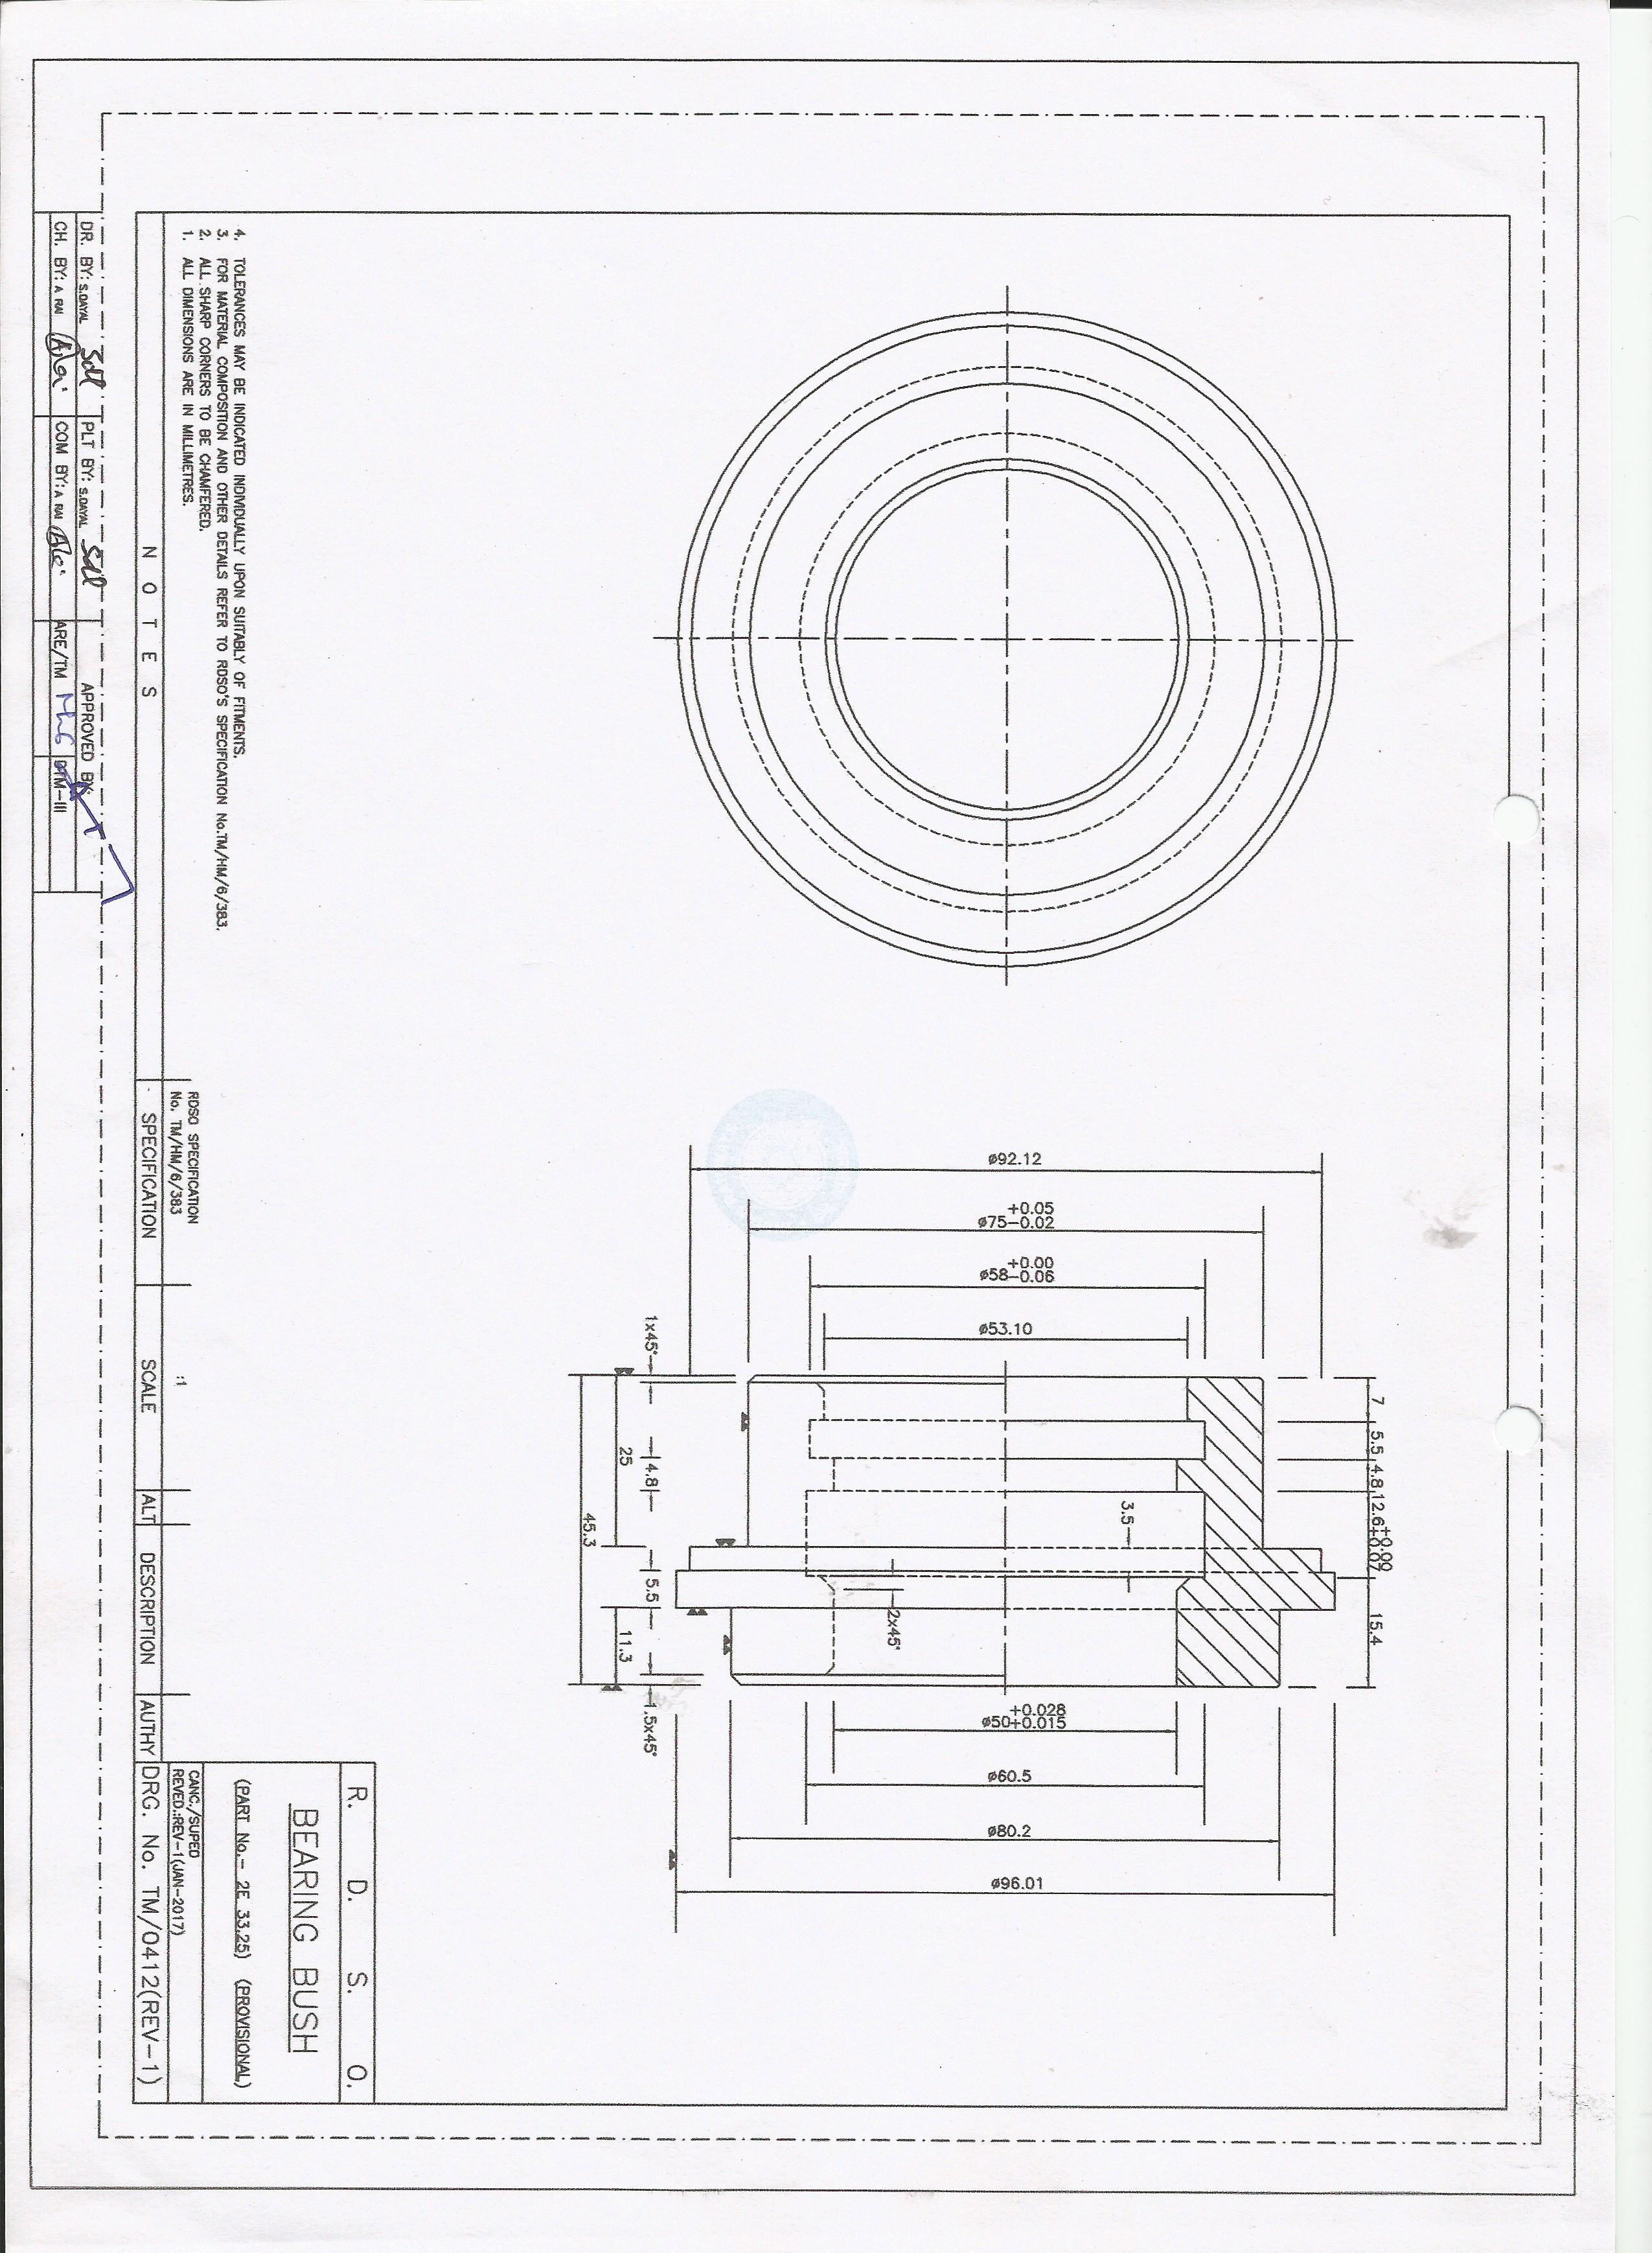 Welcome To Rdso Schematic Drawing Rev 4 Tm 0412 Rev1